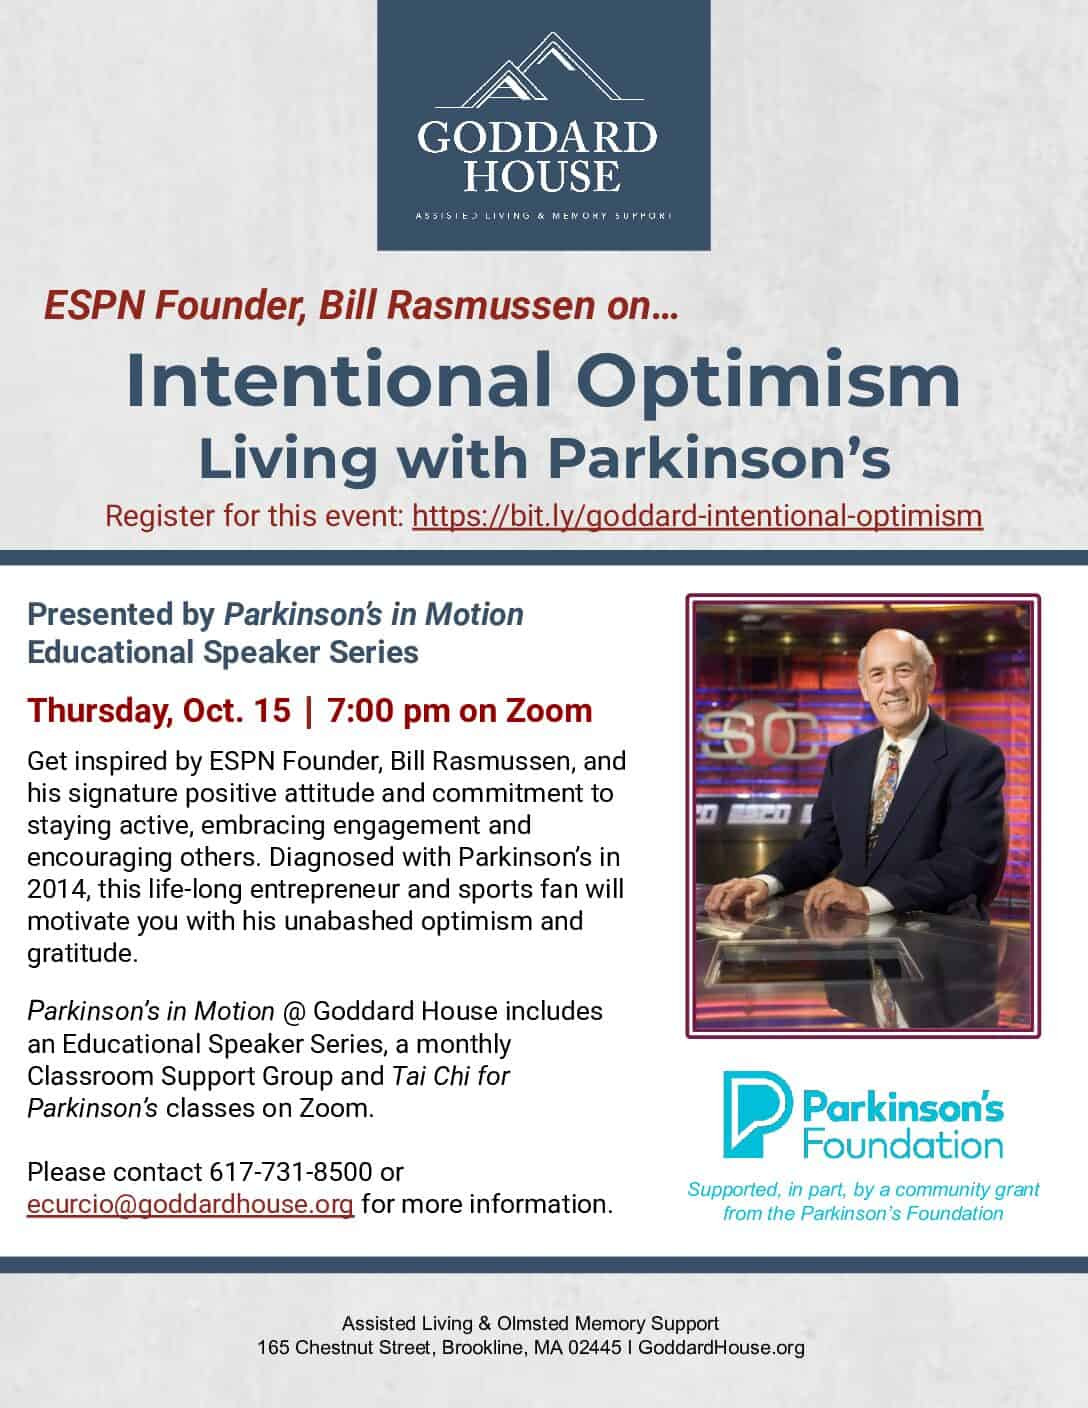 Intentional Optimism: Living with Parkinson's